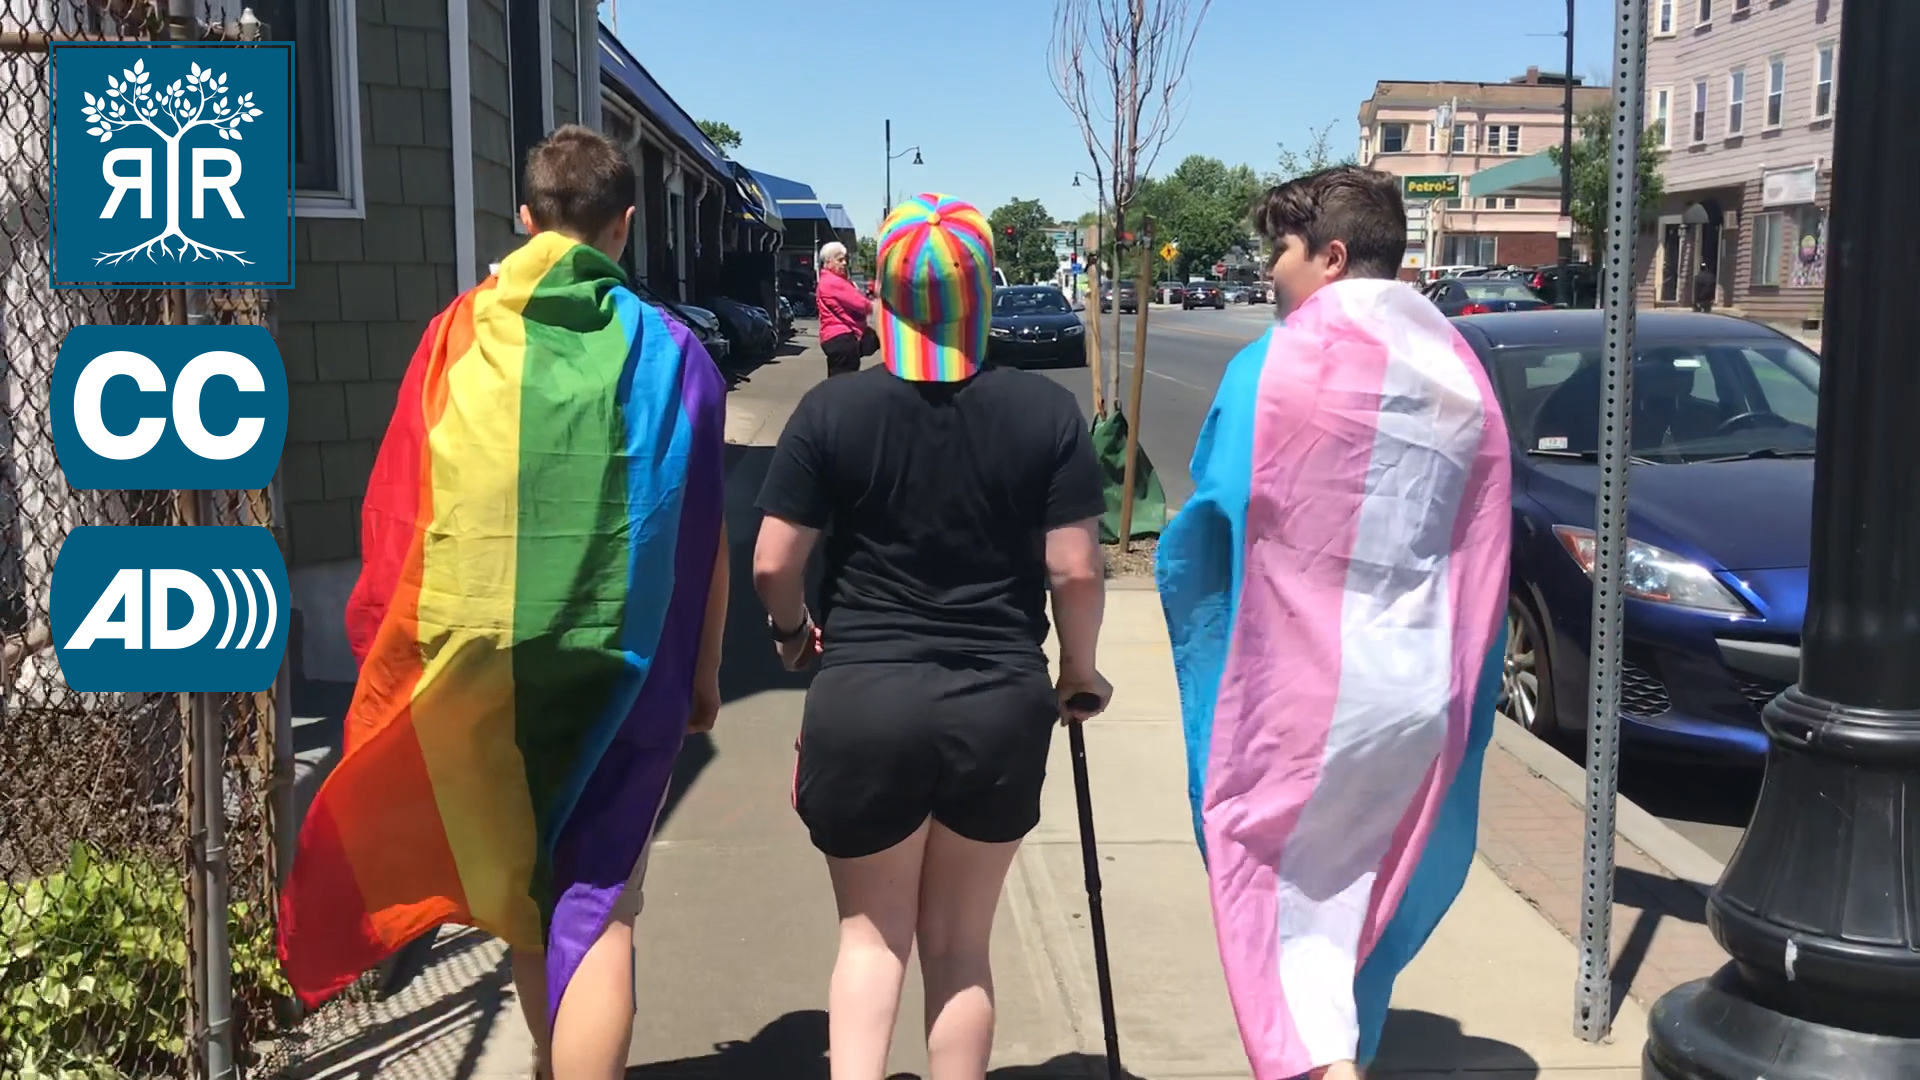 Image of Daisy walking with two friends, Daisy is in the middle of the group. On the back of the person on the left is the gay flag. On the back of the person on the right is the trans flag.